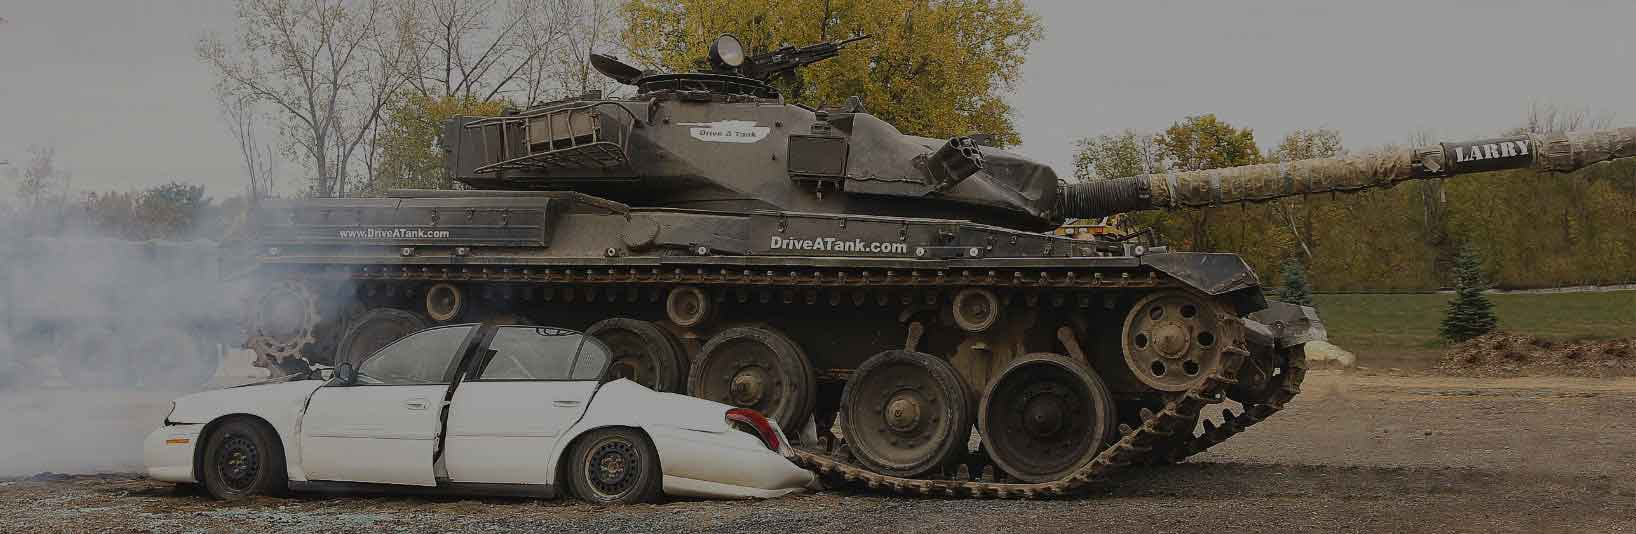 Drive A Tank >> Drive A Tank Tank Driving Car Crushing Machine Gun Shooting